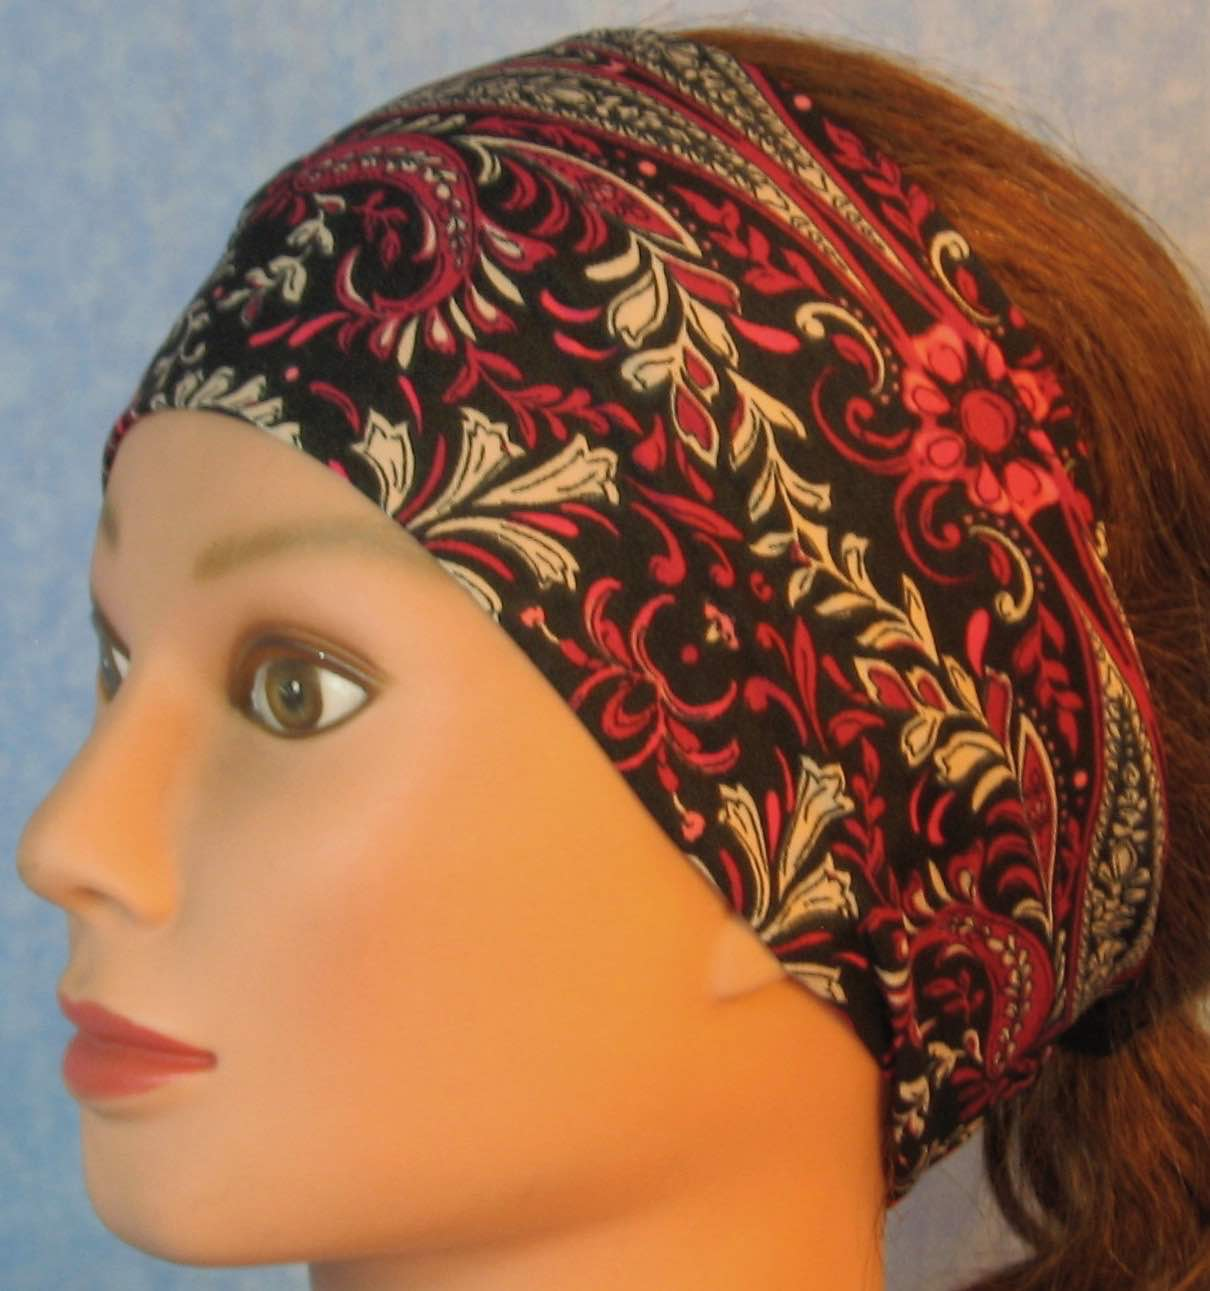 Headband-Pink Flower Paisley Leaves on Black-left